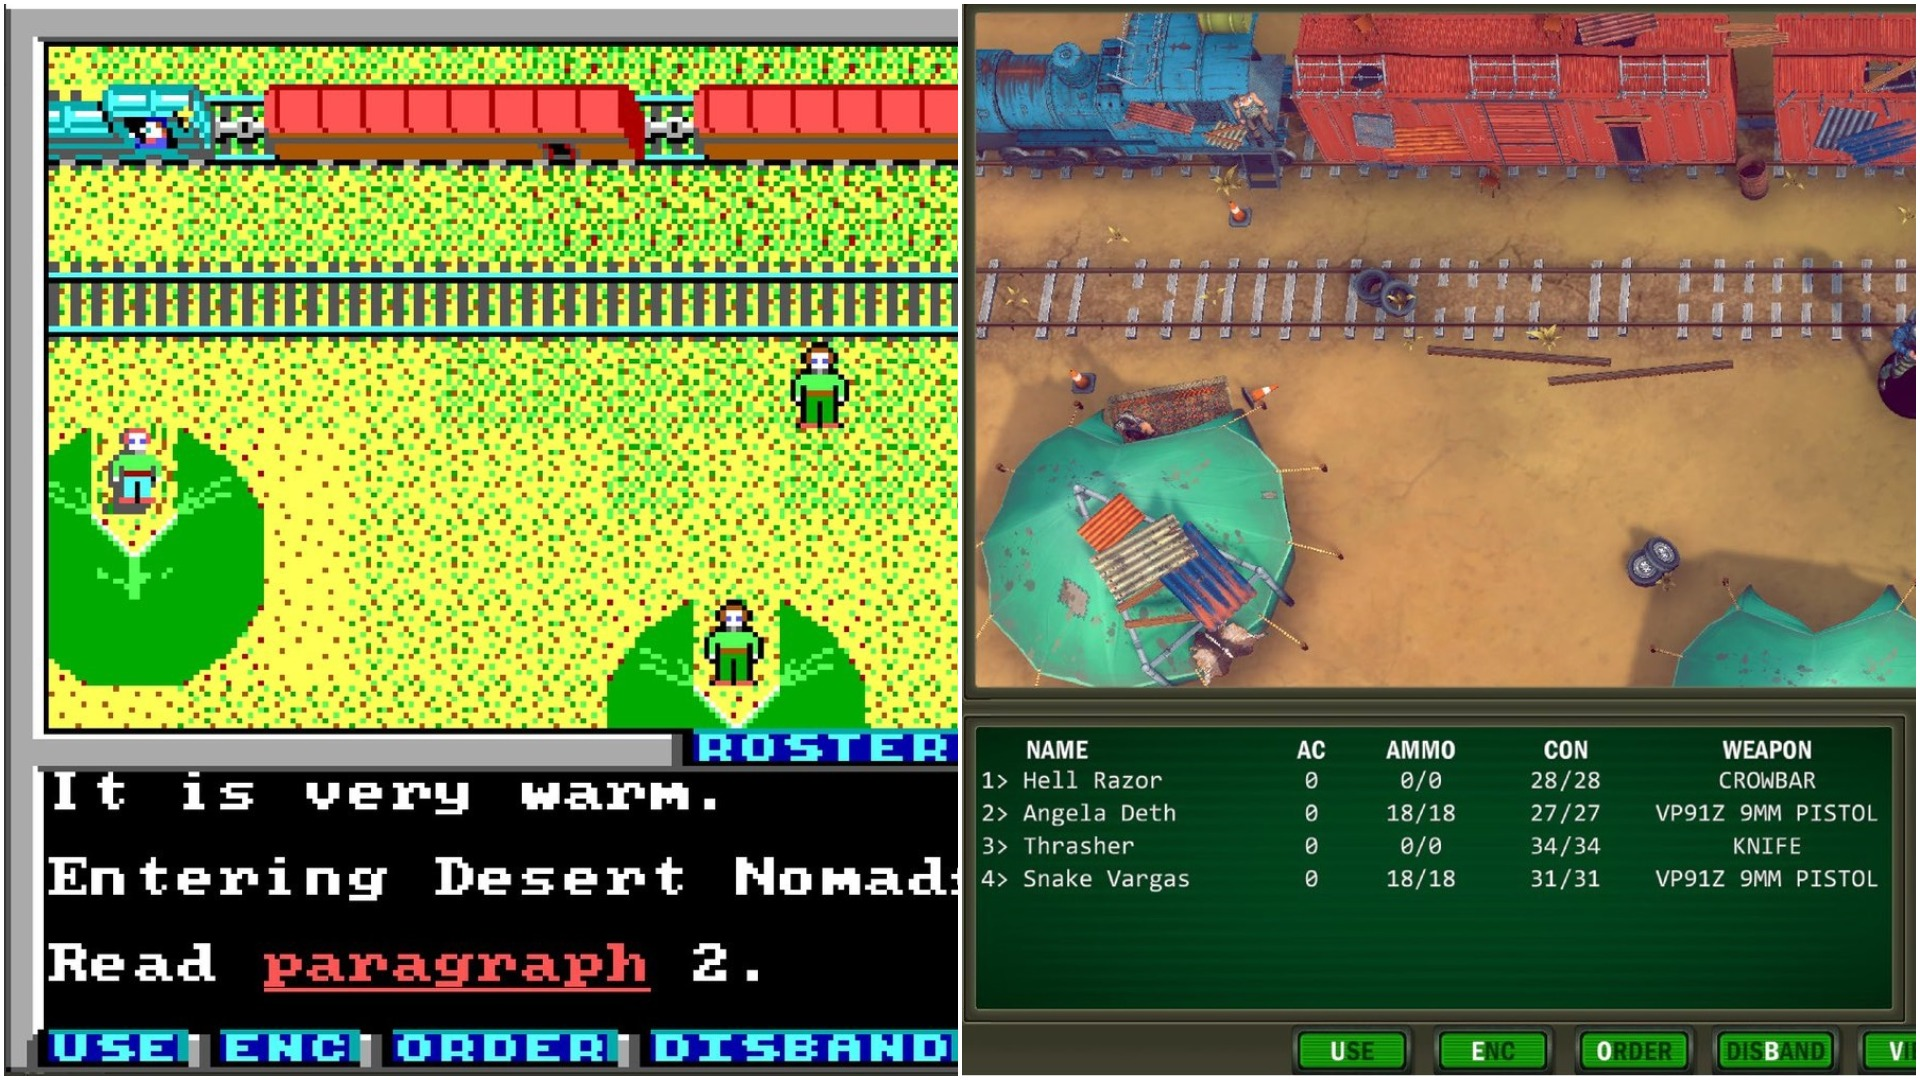 Wasteland remaster looks a whole lot like a full remake